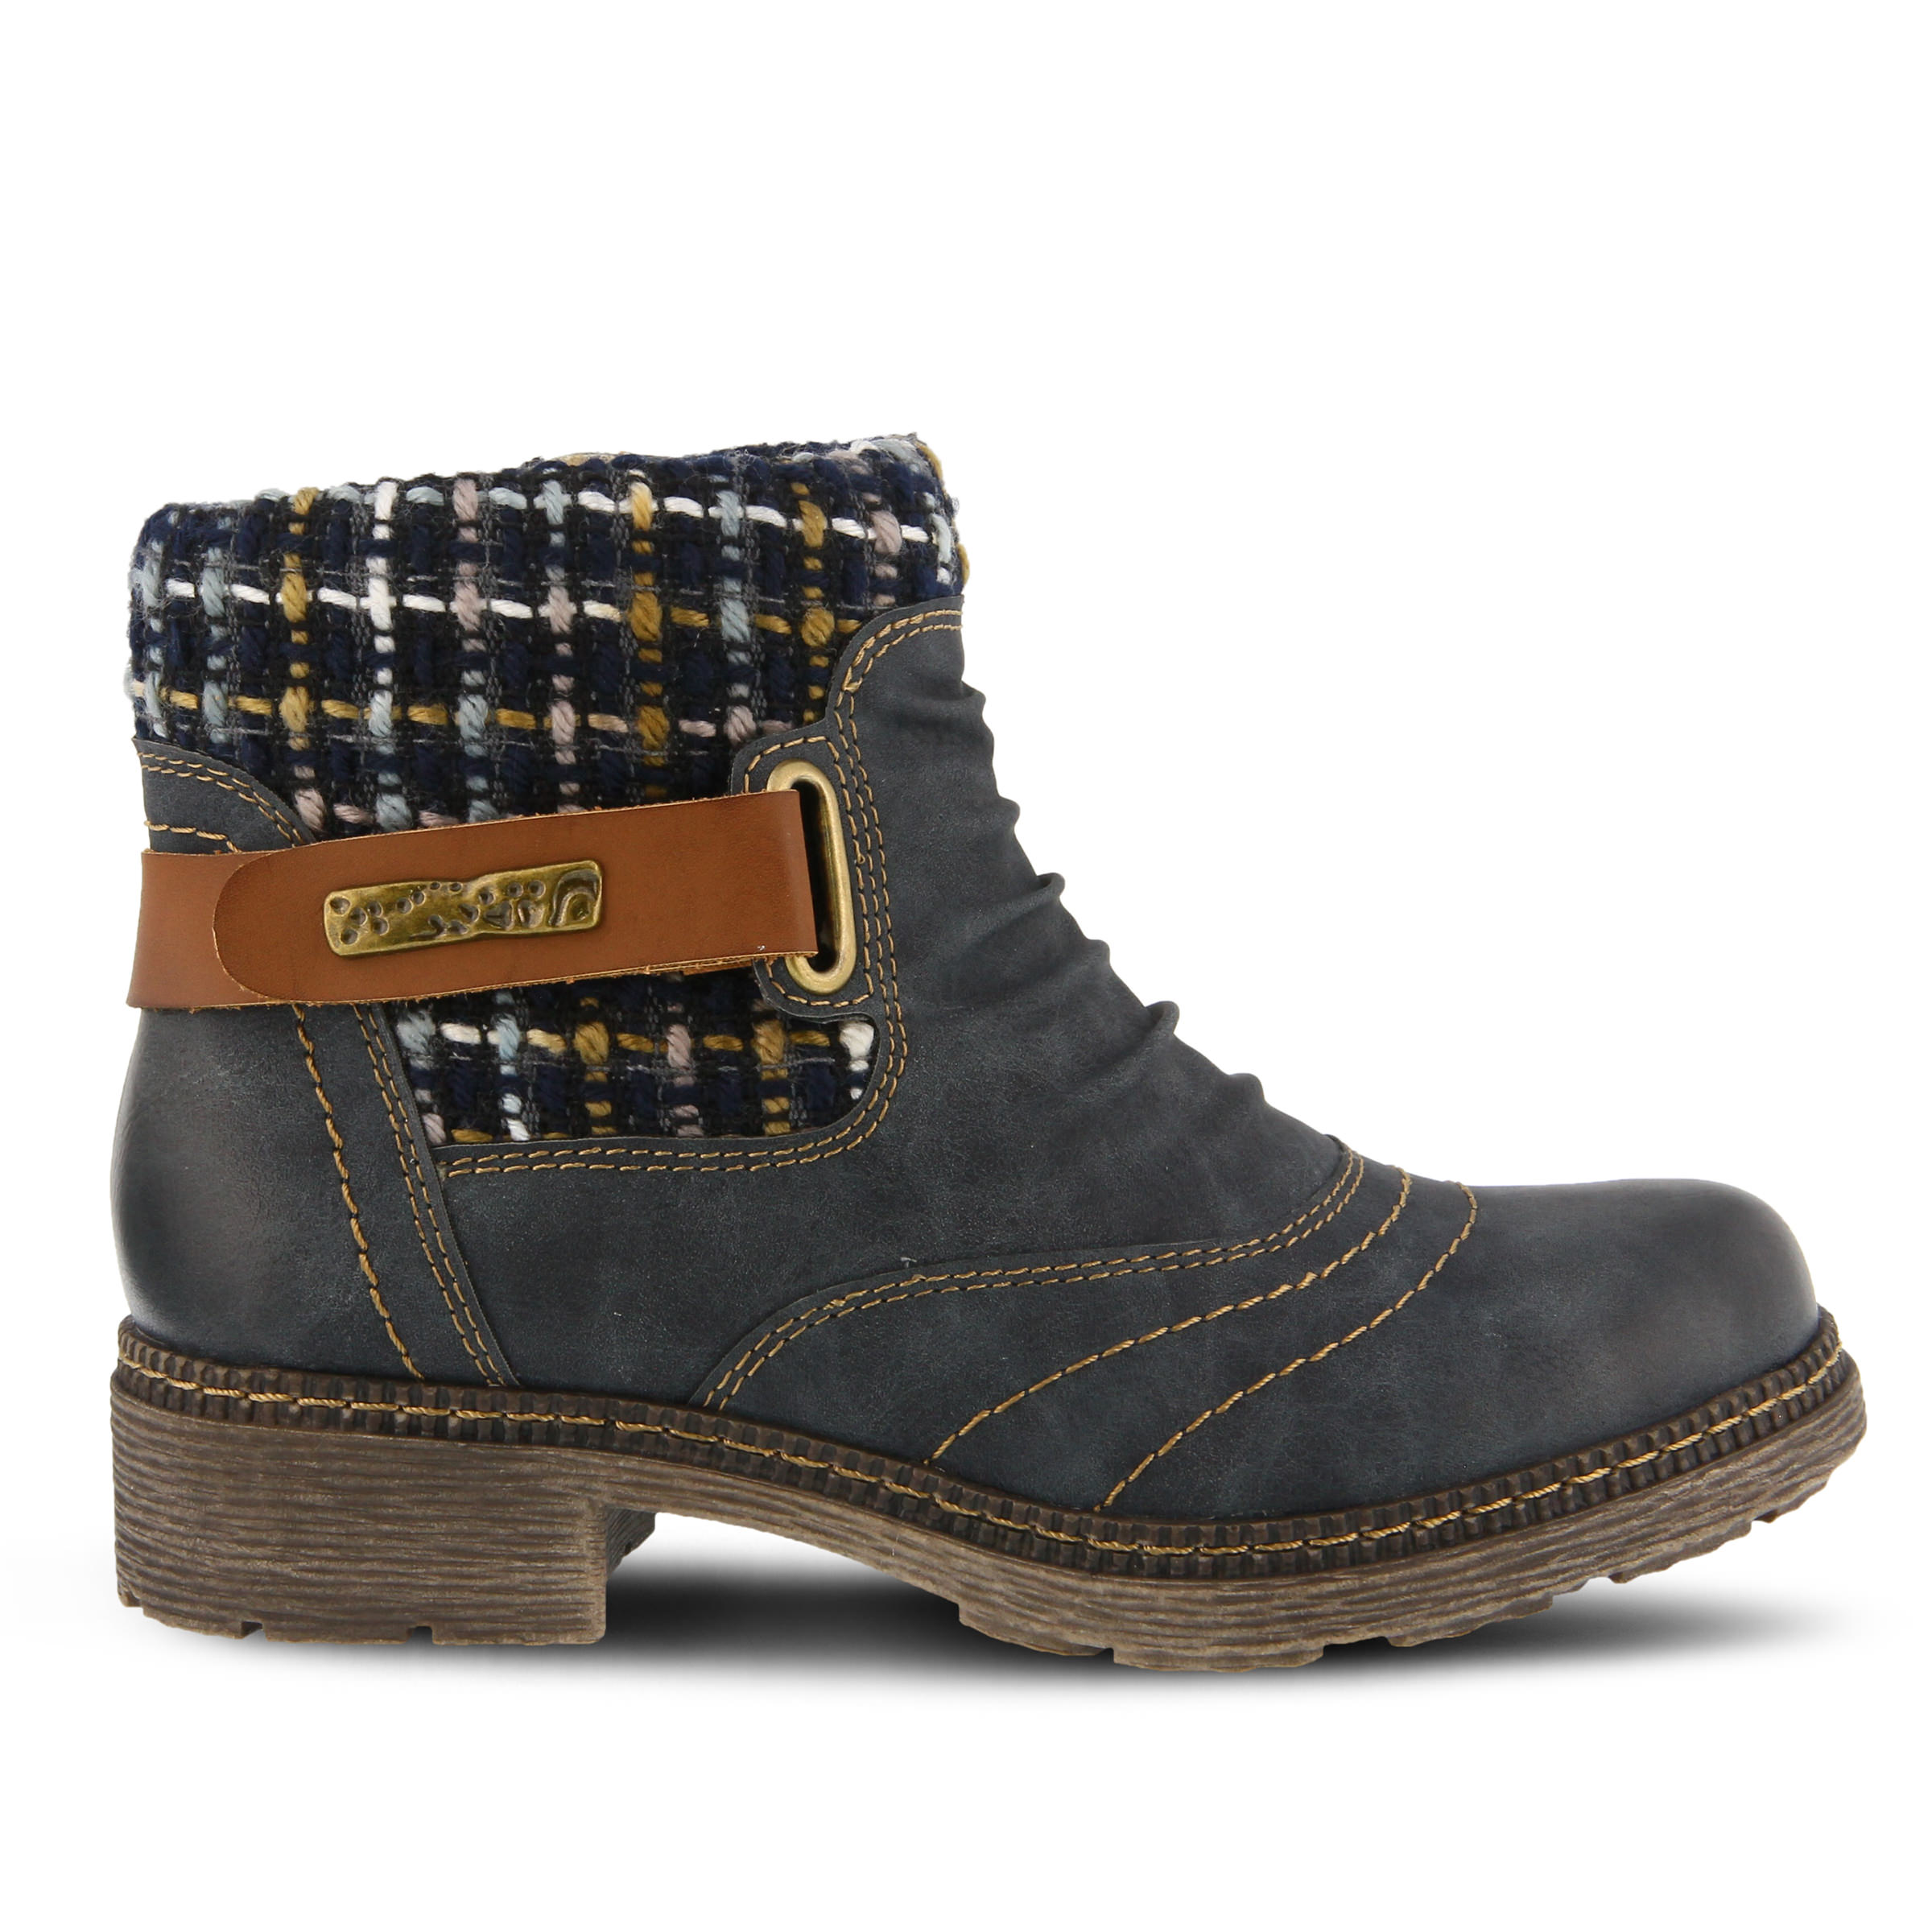 SPRING STEP Citrine Women's Boots (Blue Faux Leather)